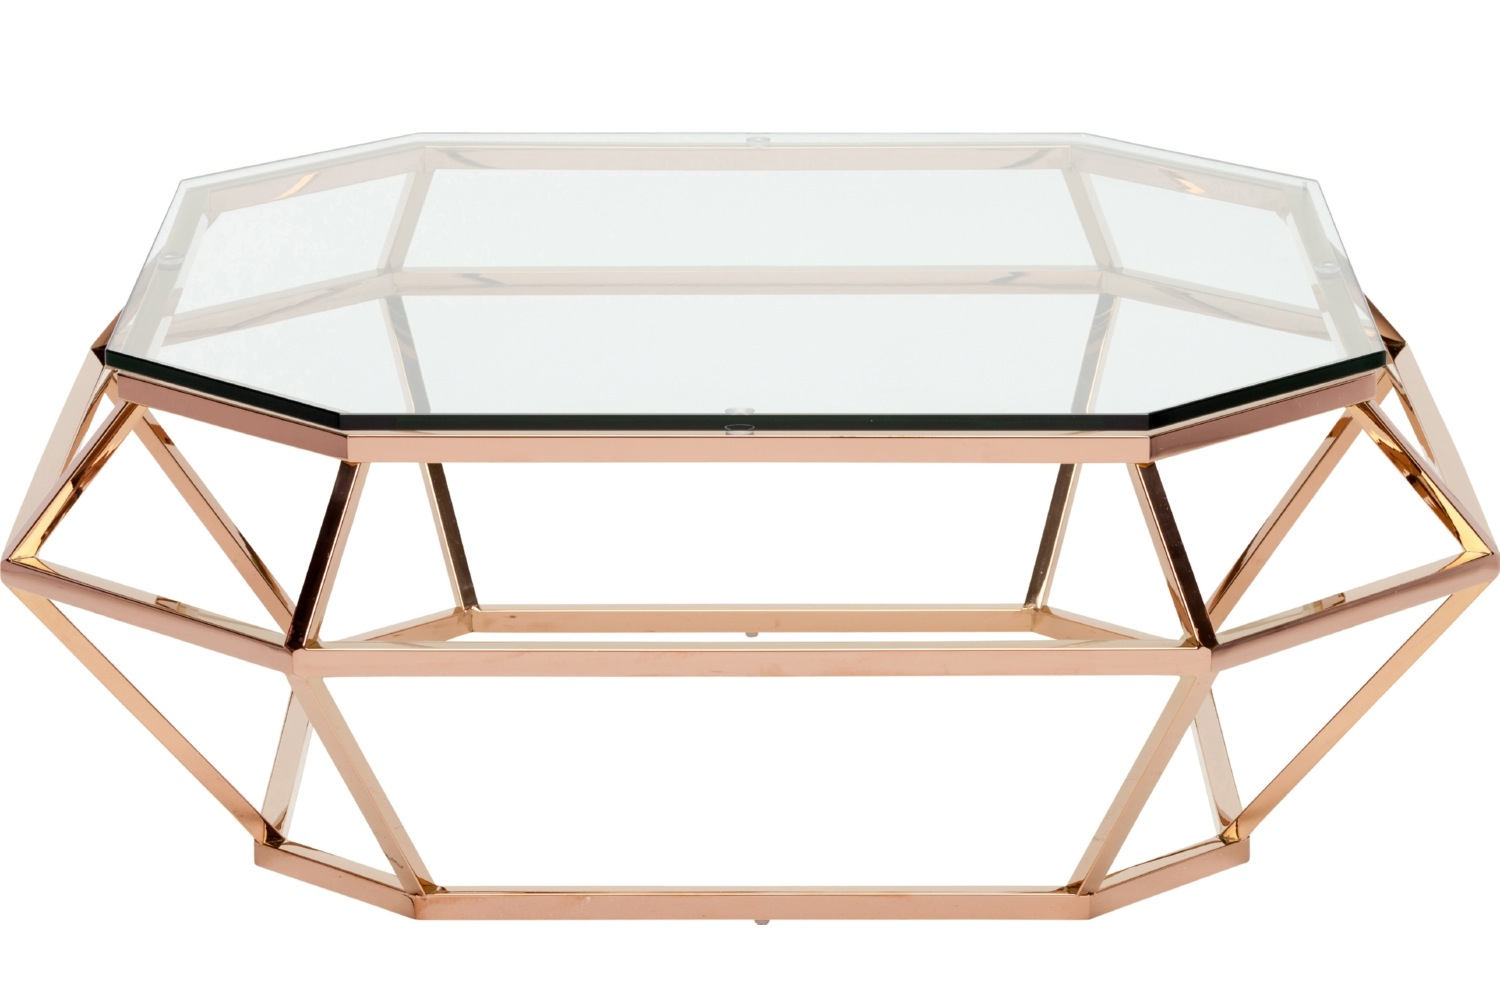 rose gold coffee table Nuevo Diamond Square Coffee Table Stainless Steel or Rose Gold  rose gold coffee table